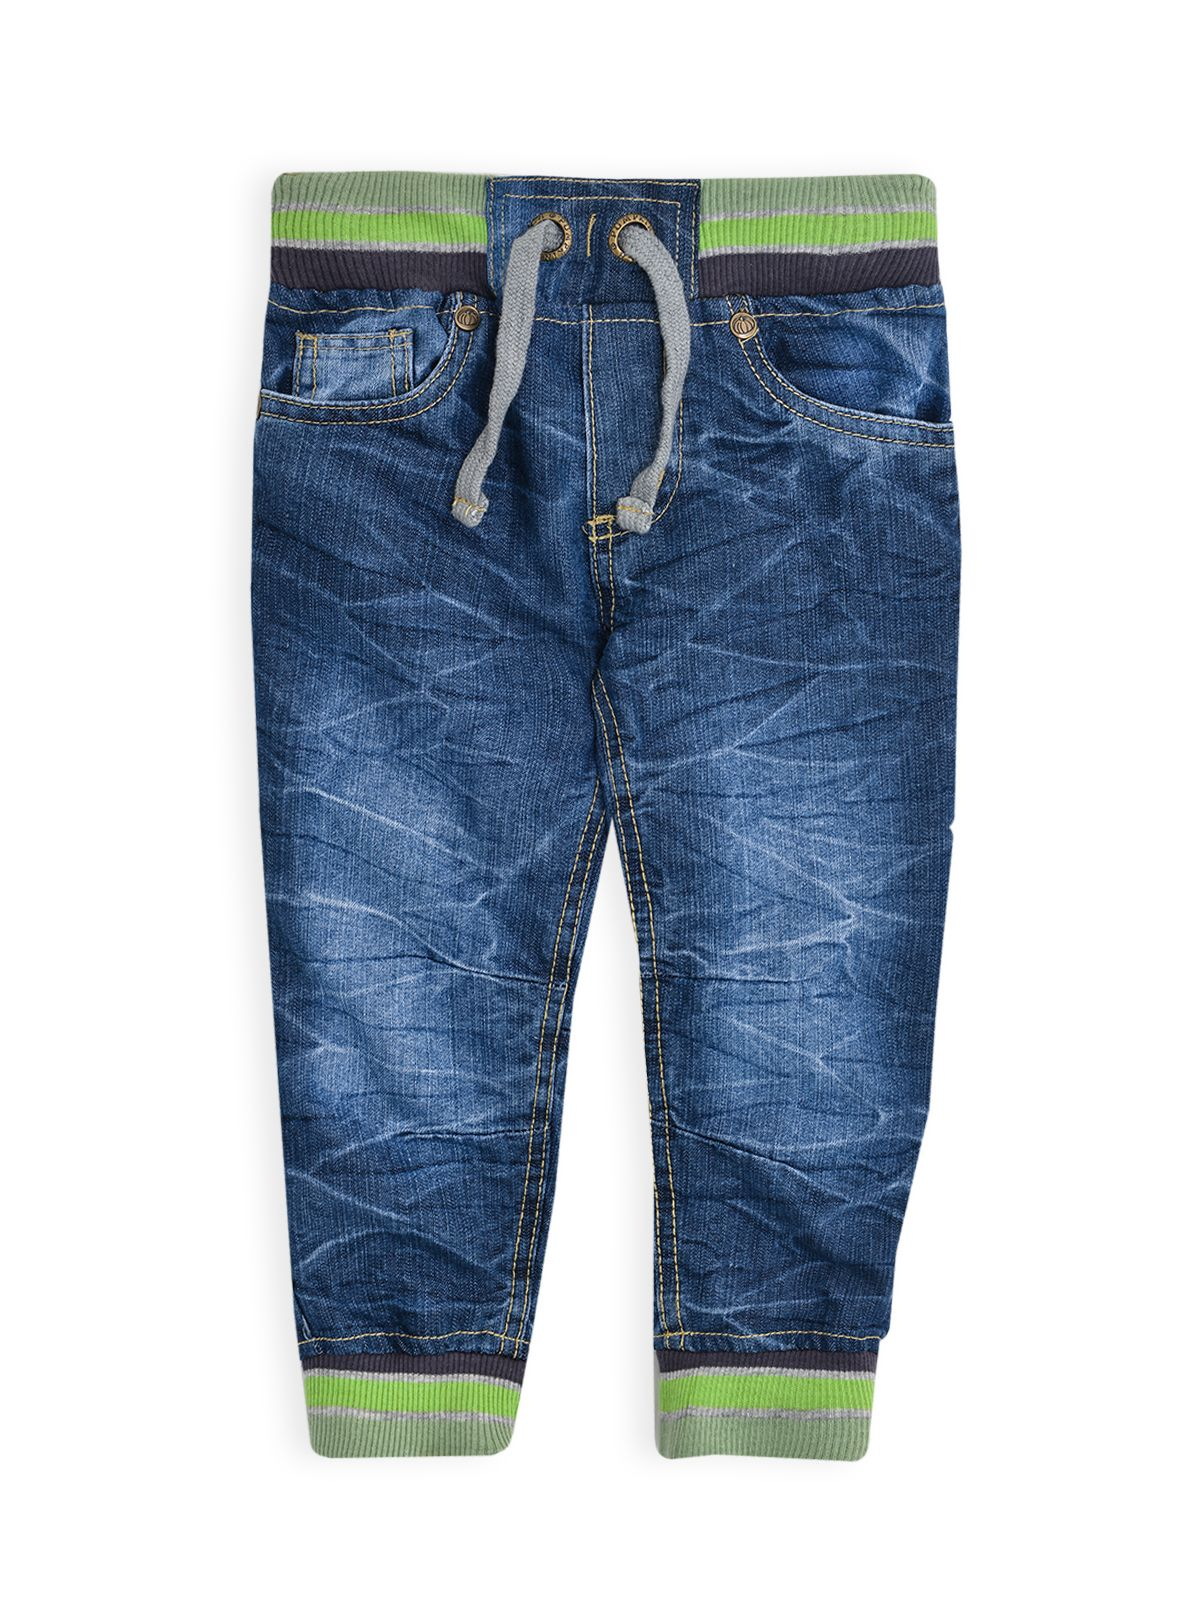 Boys rib waist & cuff denim jean